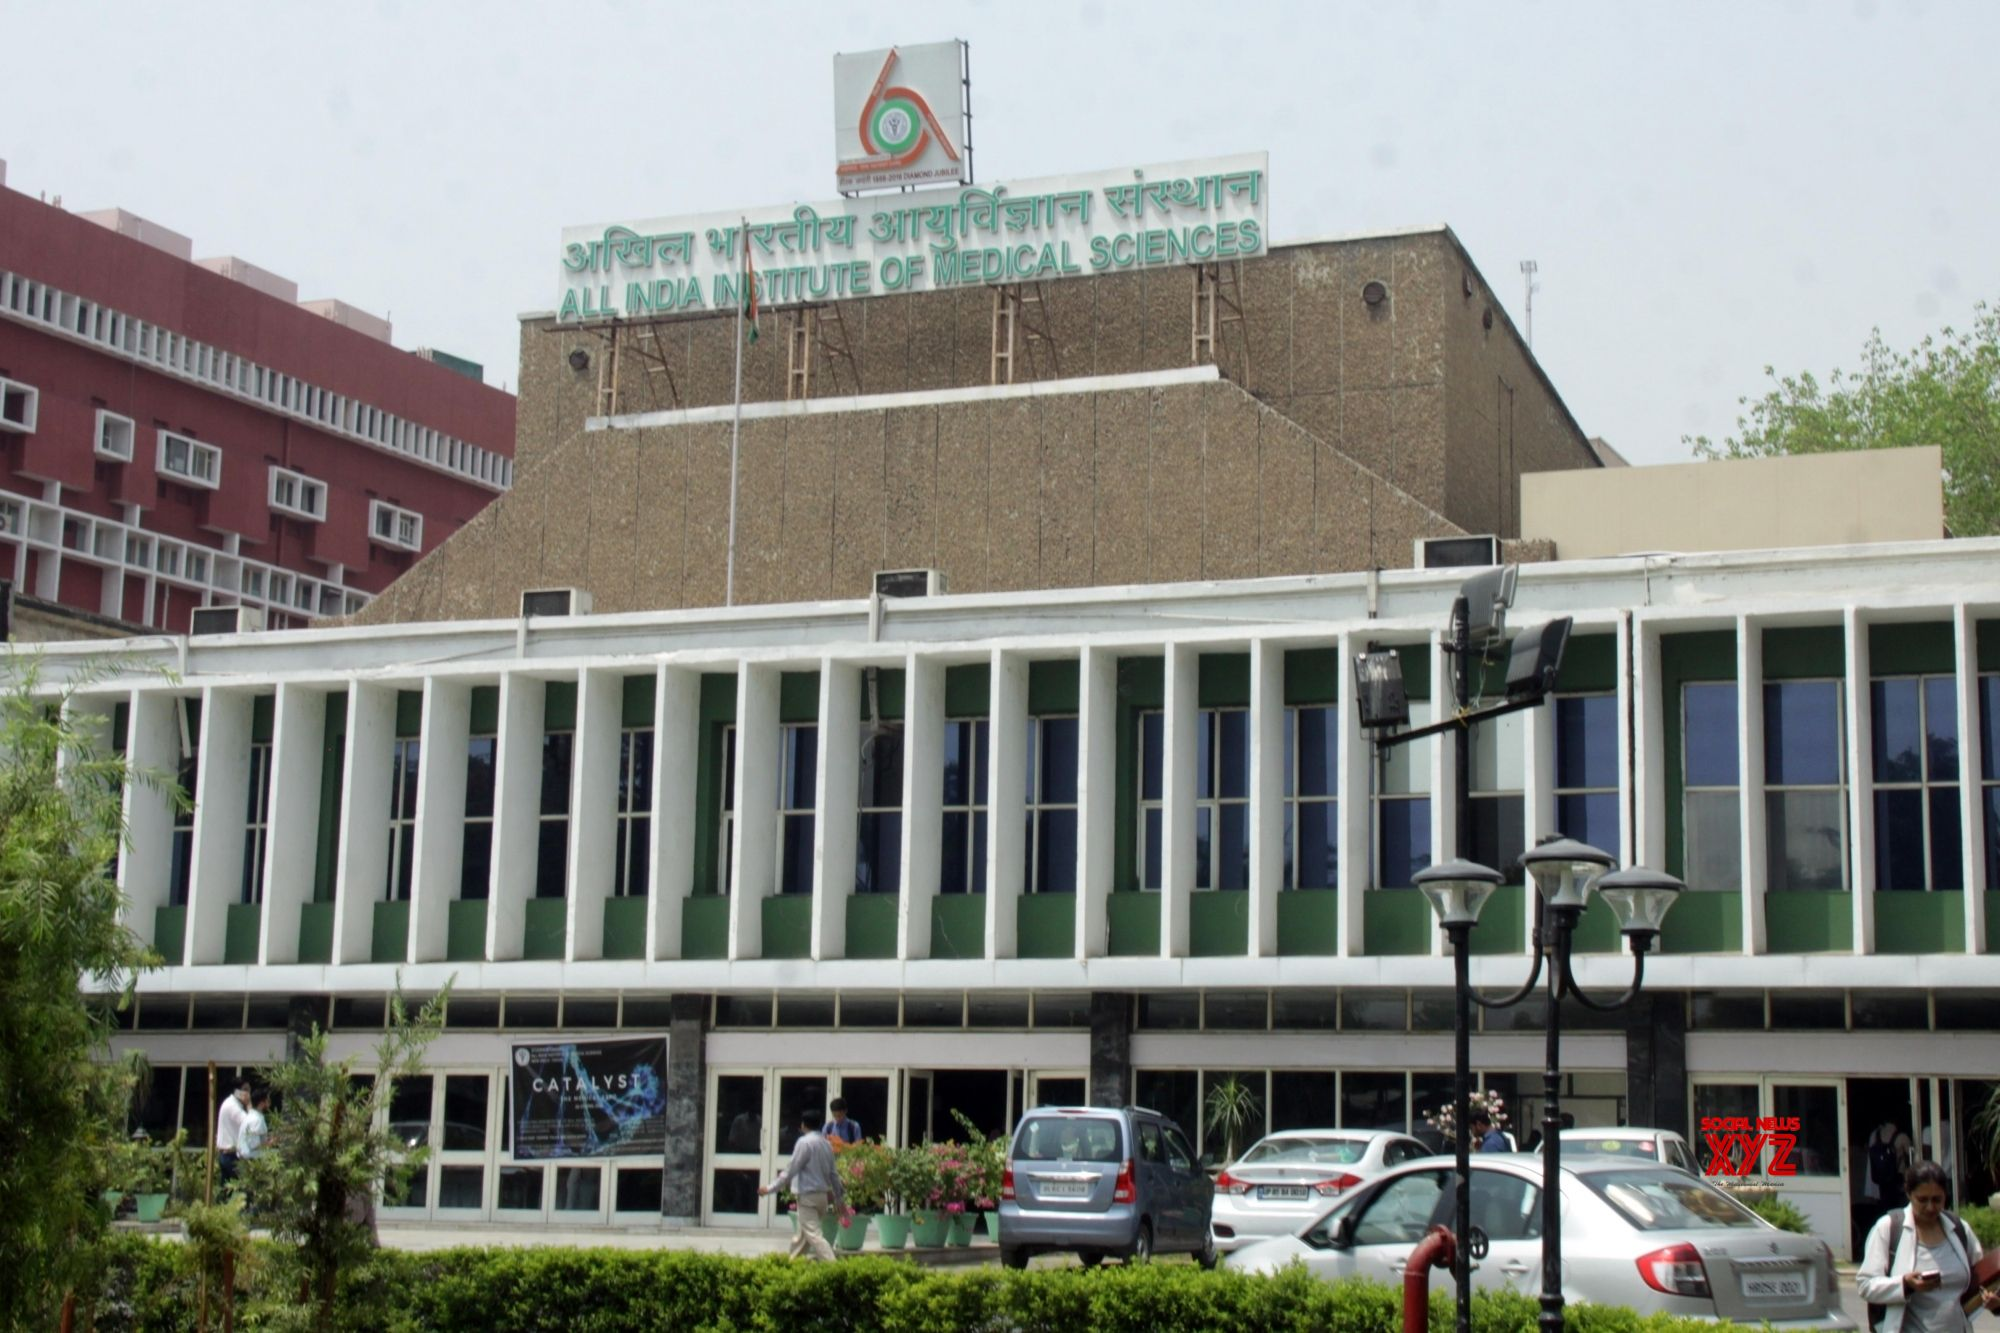 Hypertension most common comorbidity among Covid patients: AIIMS doctor